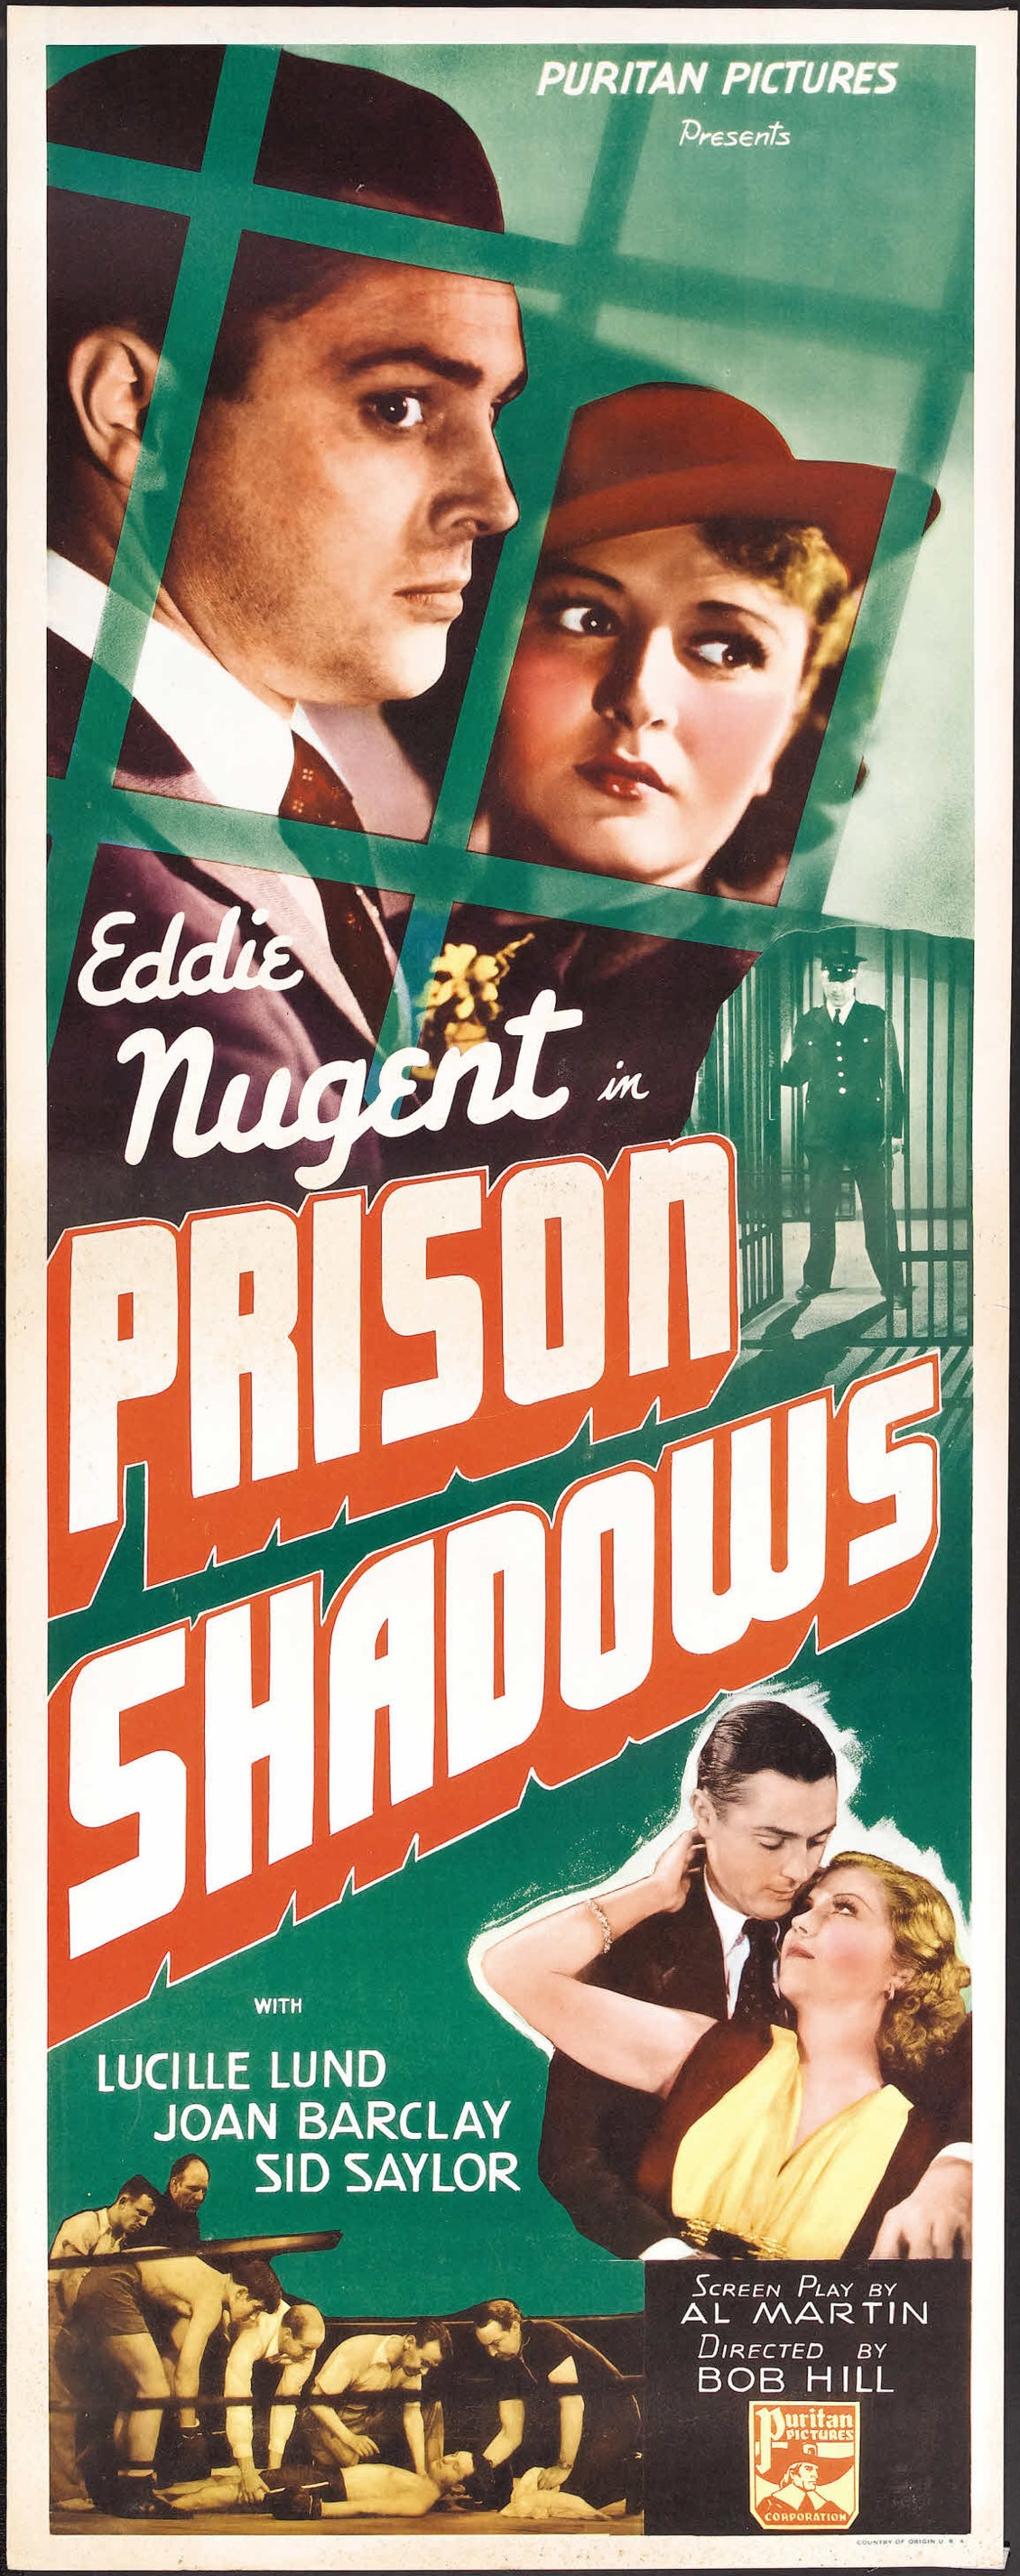 Joan Barclay, Lucille Lund, and Edward J. Nugent in Prison Shadows (1936)